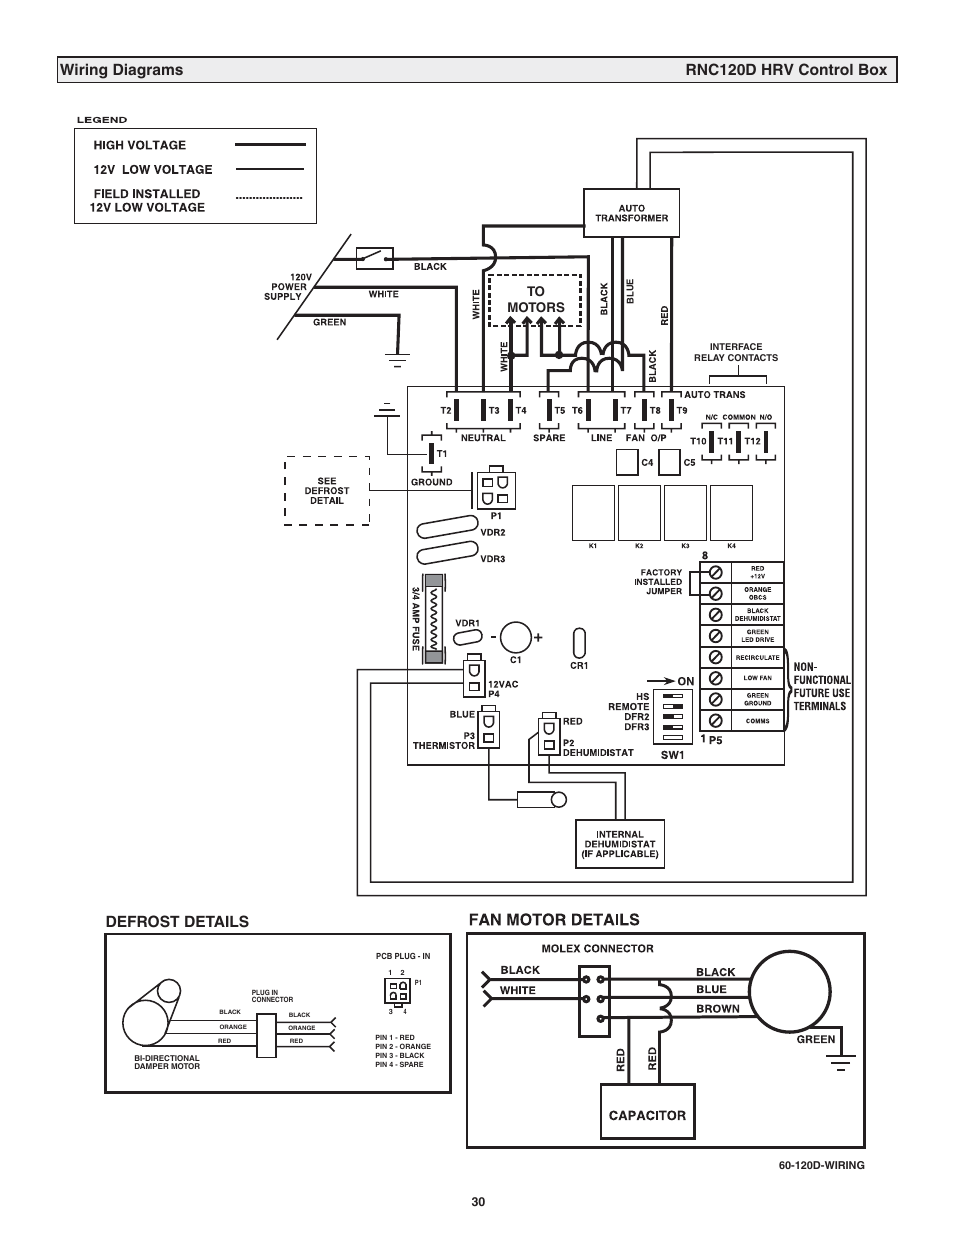 lifebreath rnc120d user manual page 30 36 also for john deere wiring diagram 7 pin plug connector wiring diagram 7 pin plug